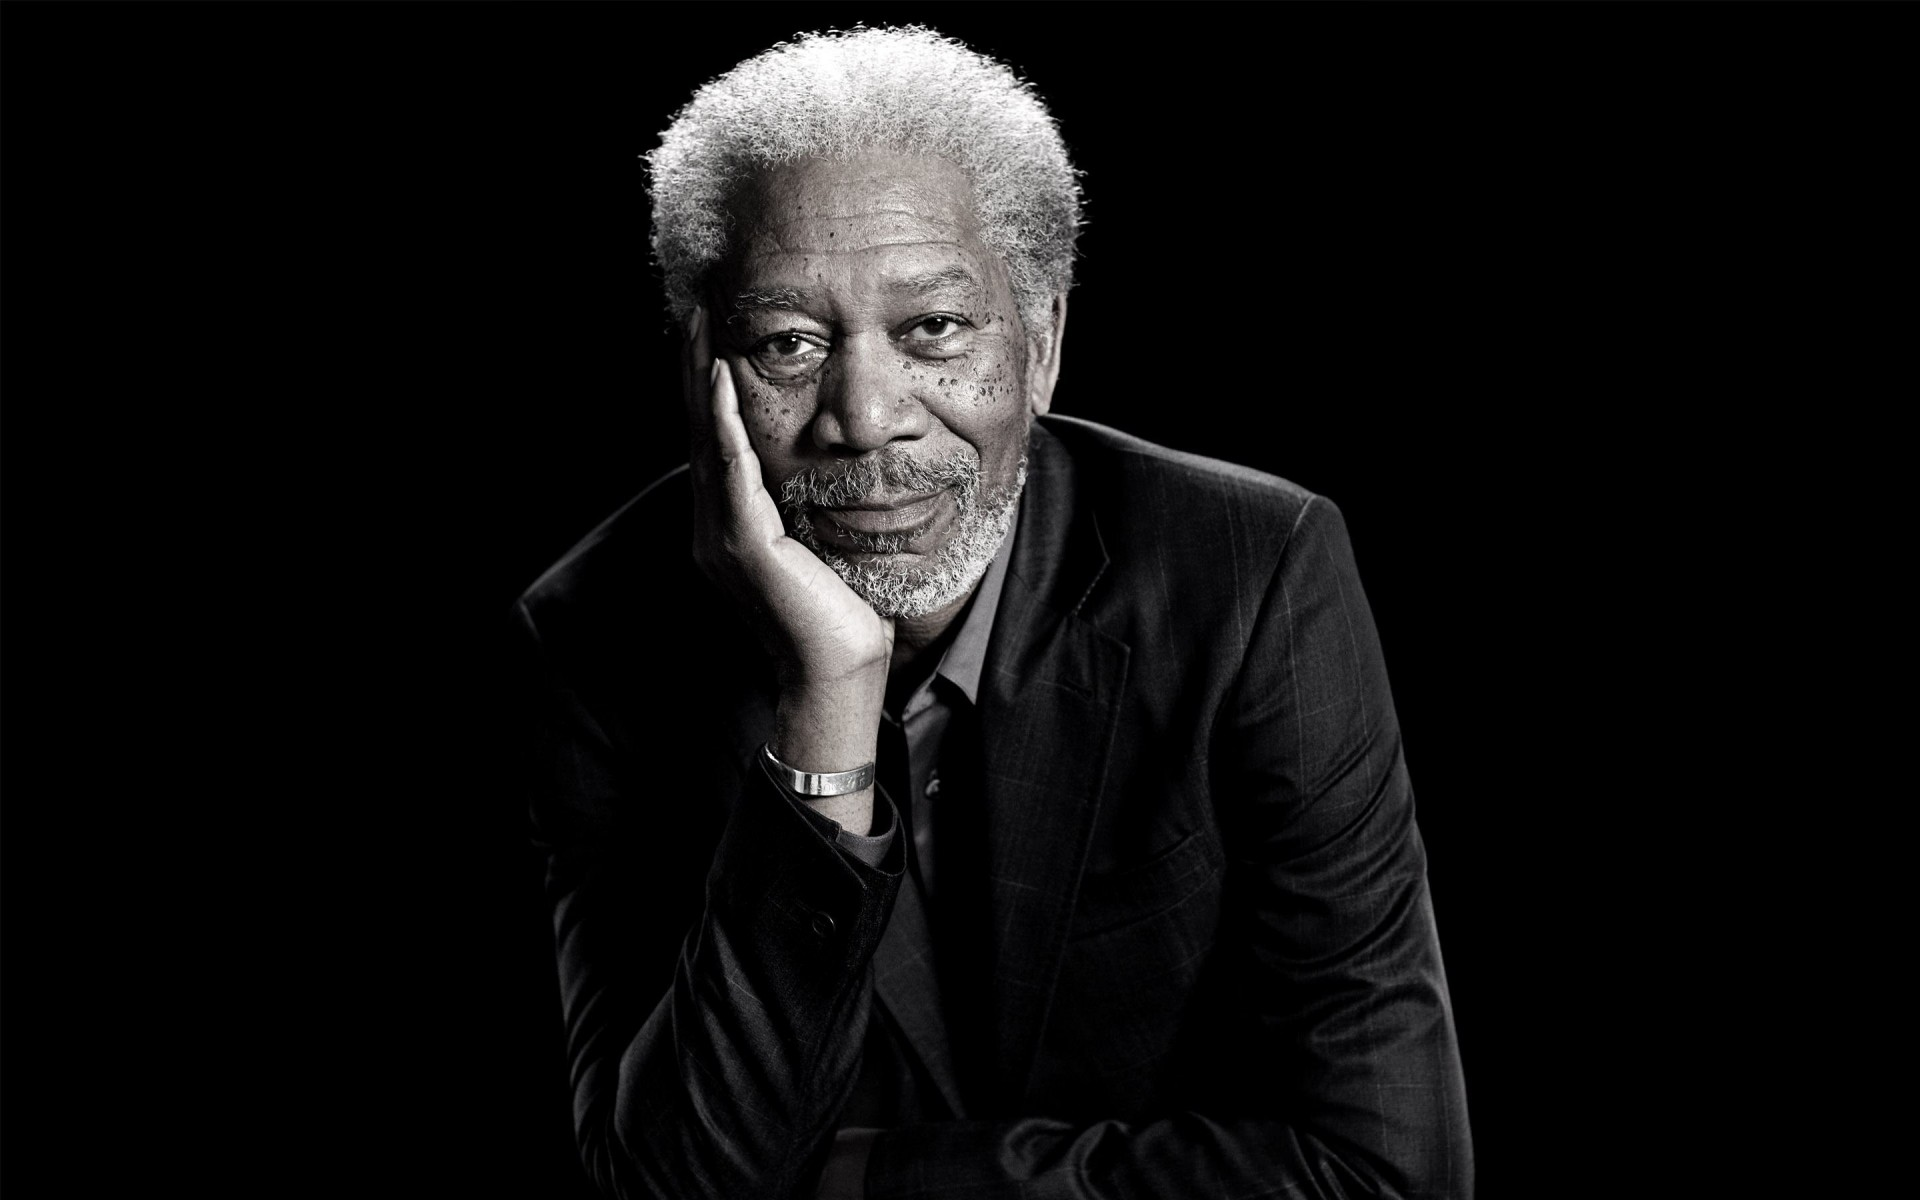 Morgan Freeman Portrait Wallpaper for Desktop 1920x1200